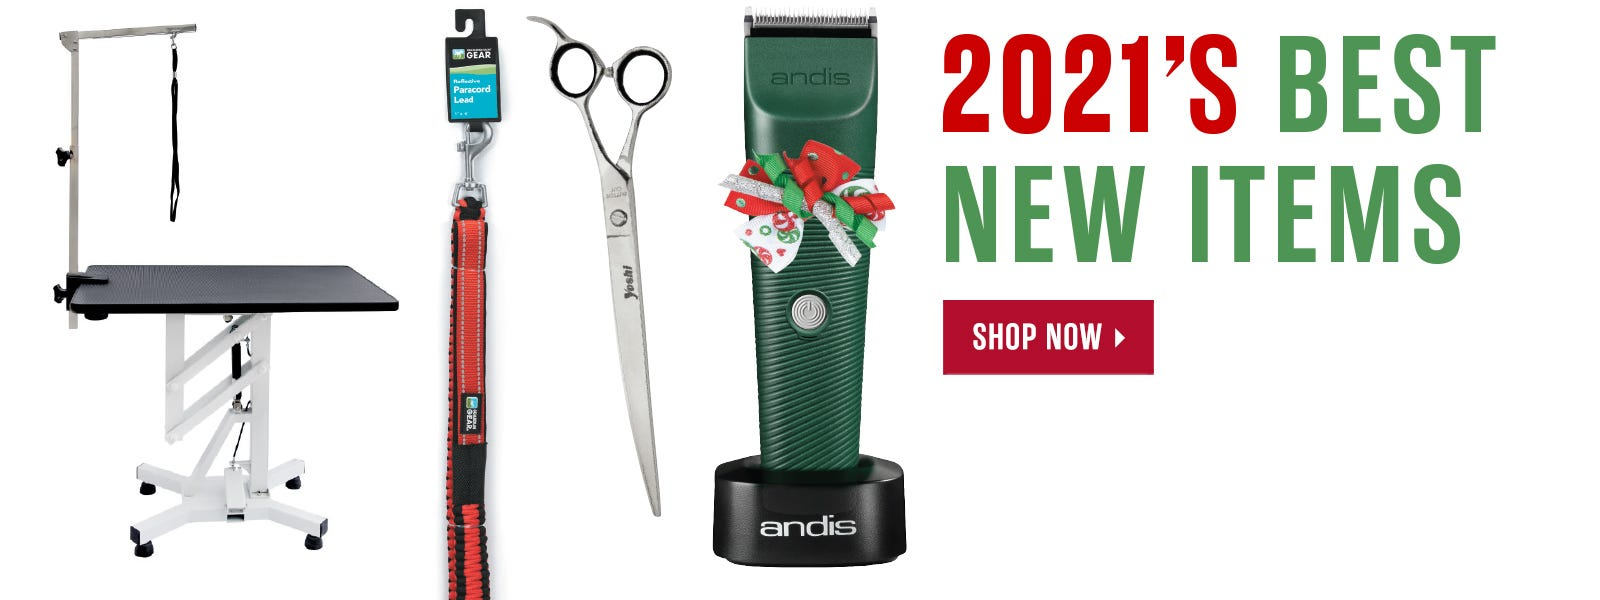 2021's Best New Products!